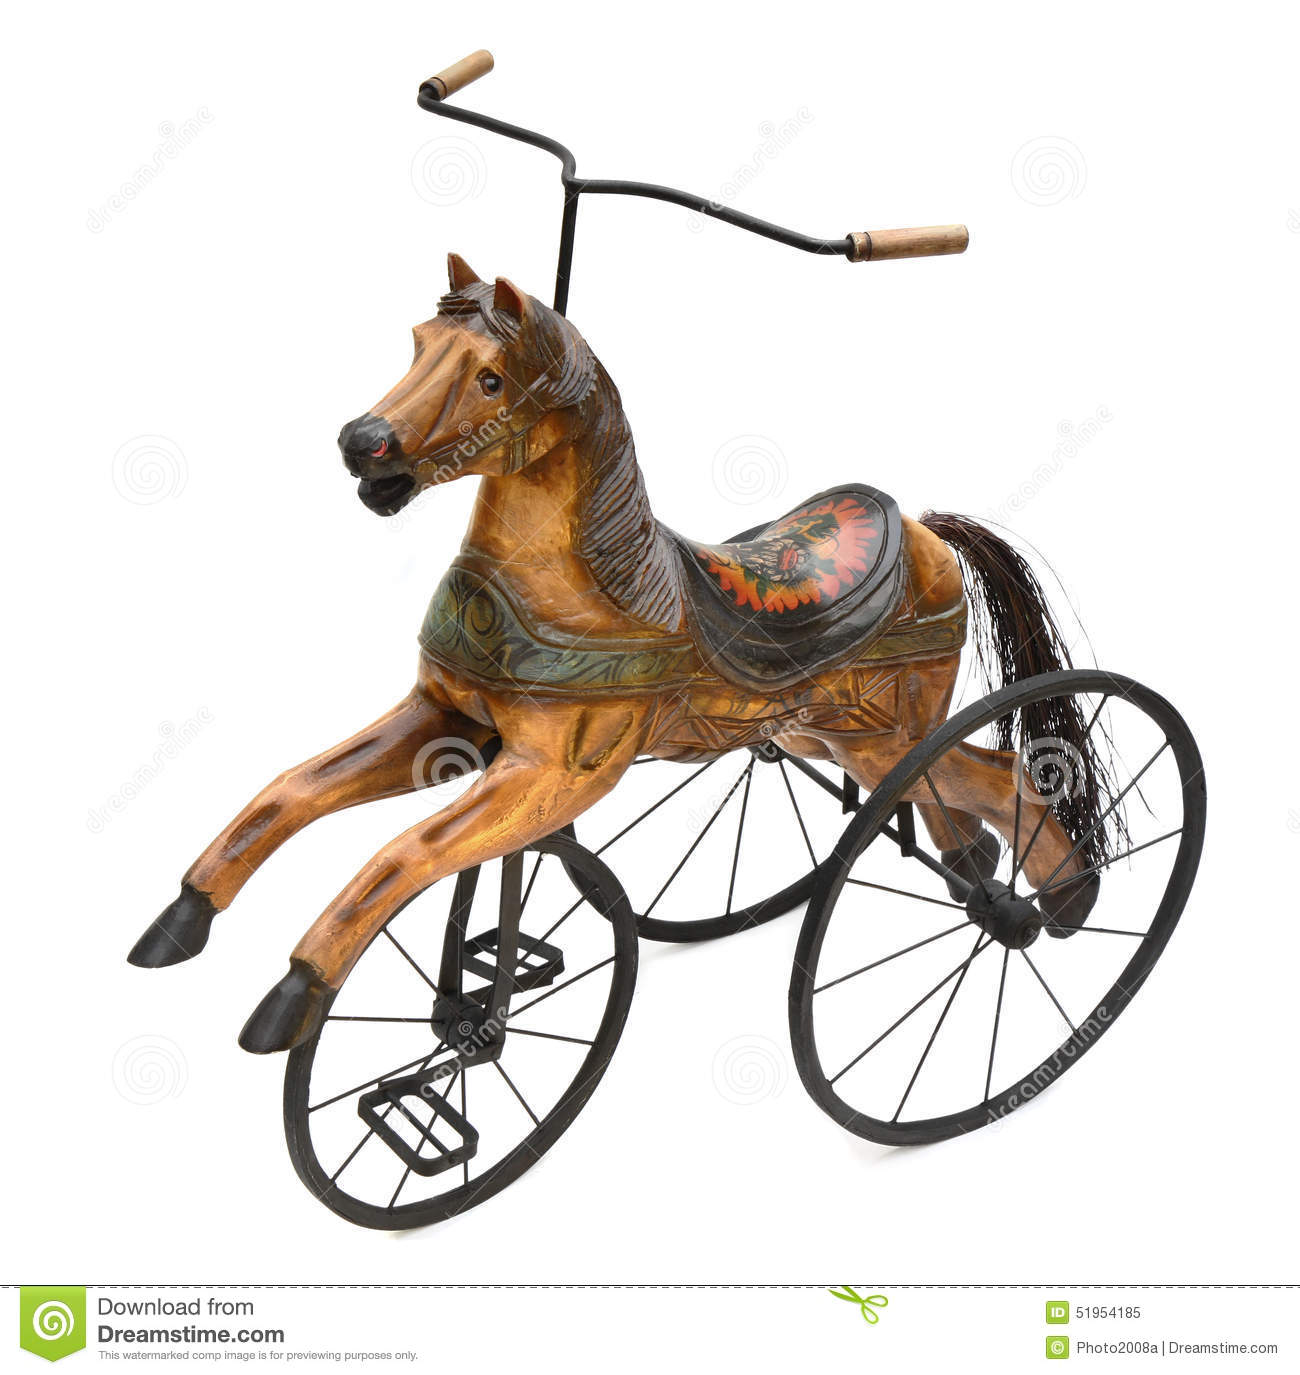 V lo en bois antique de tricycle de cheval image stock for Multiplication cheval